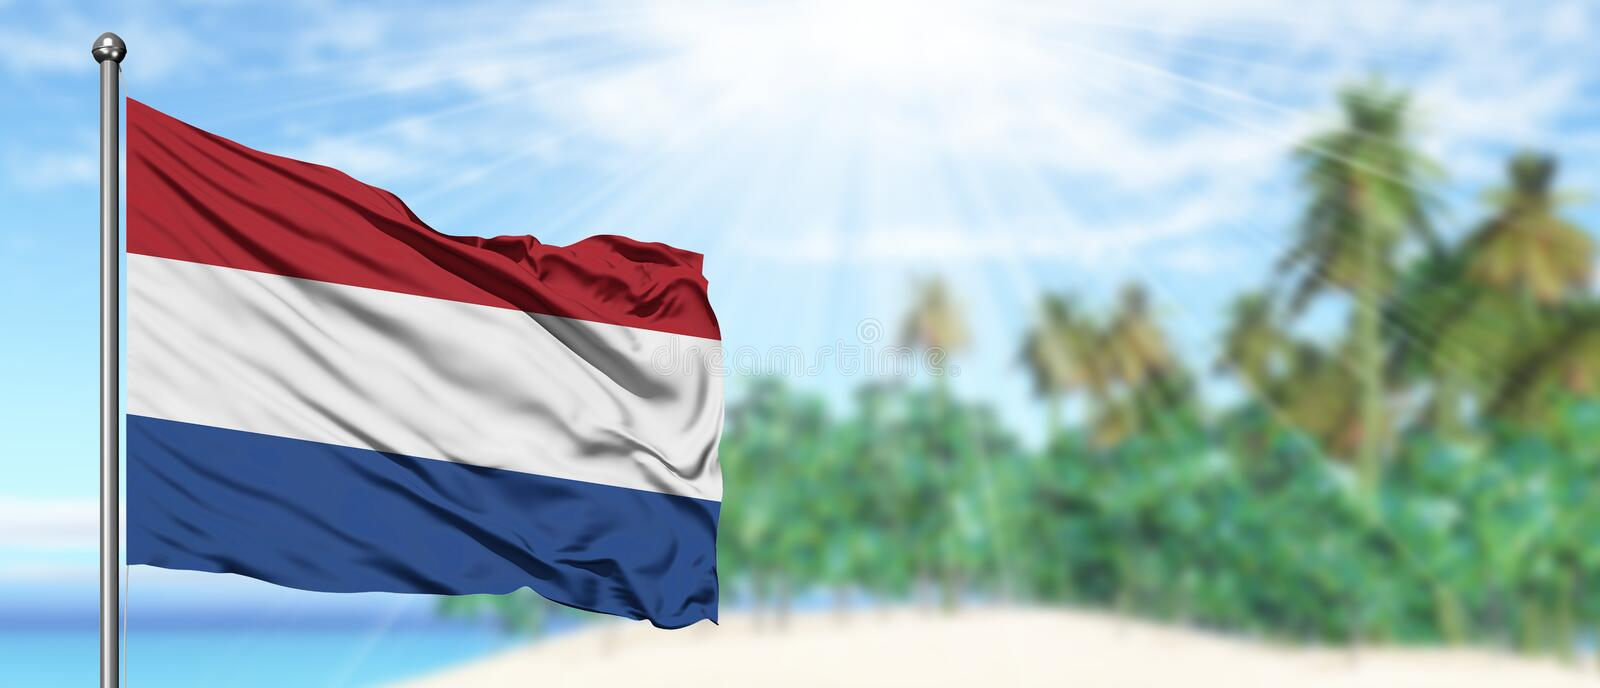 Waving Netherlands flag in the sunny blue sky with summer beach background. Vacation theme, holiday concept stock photos